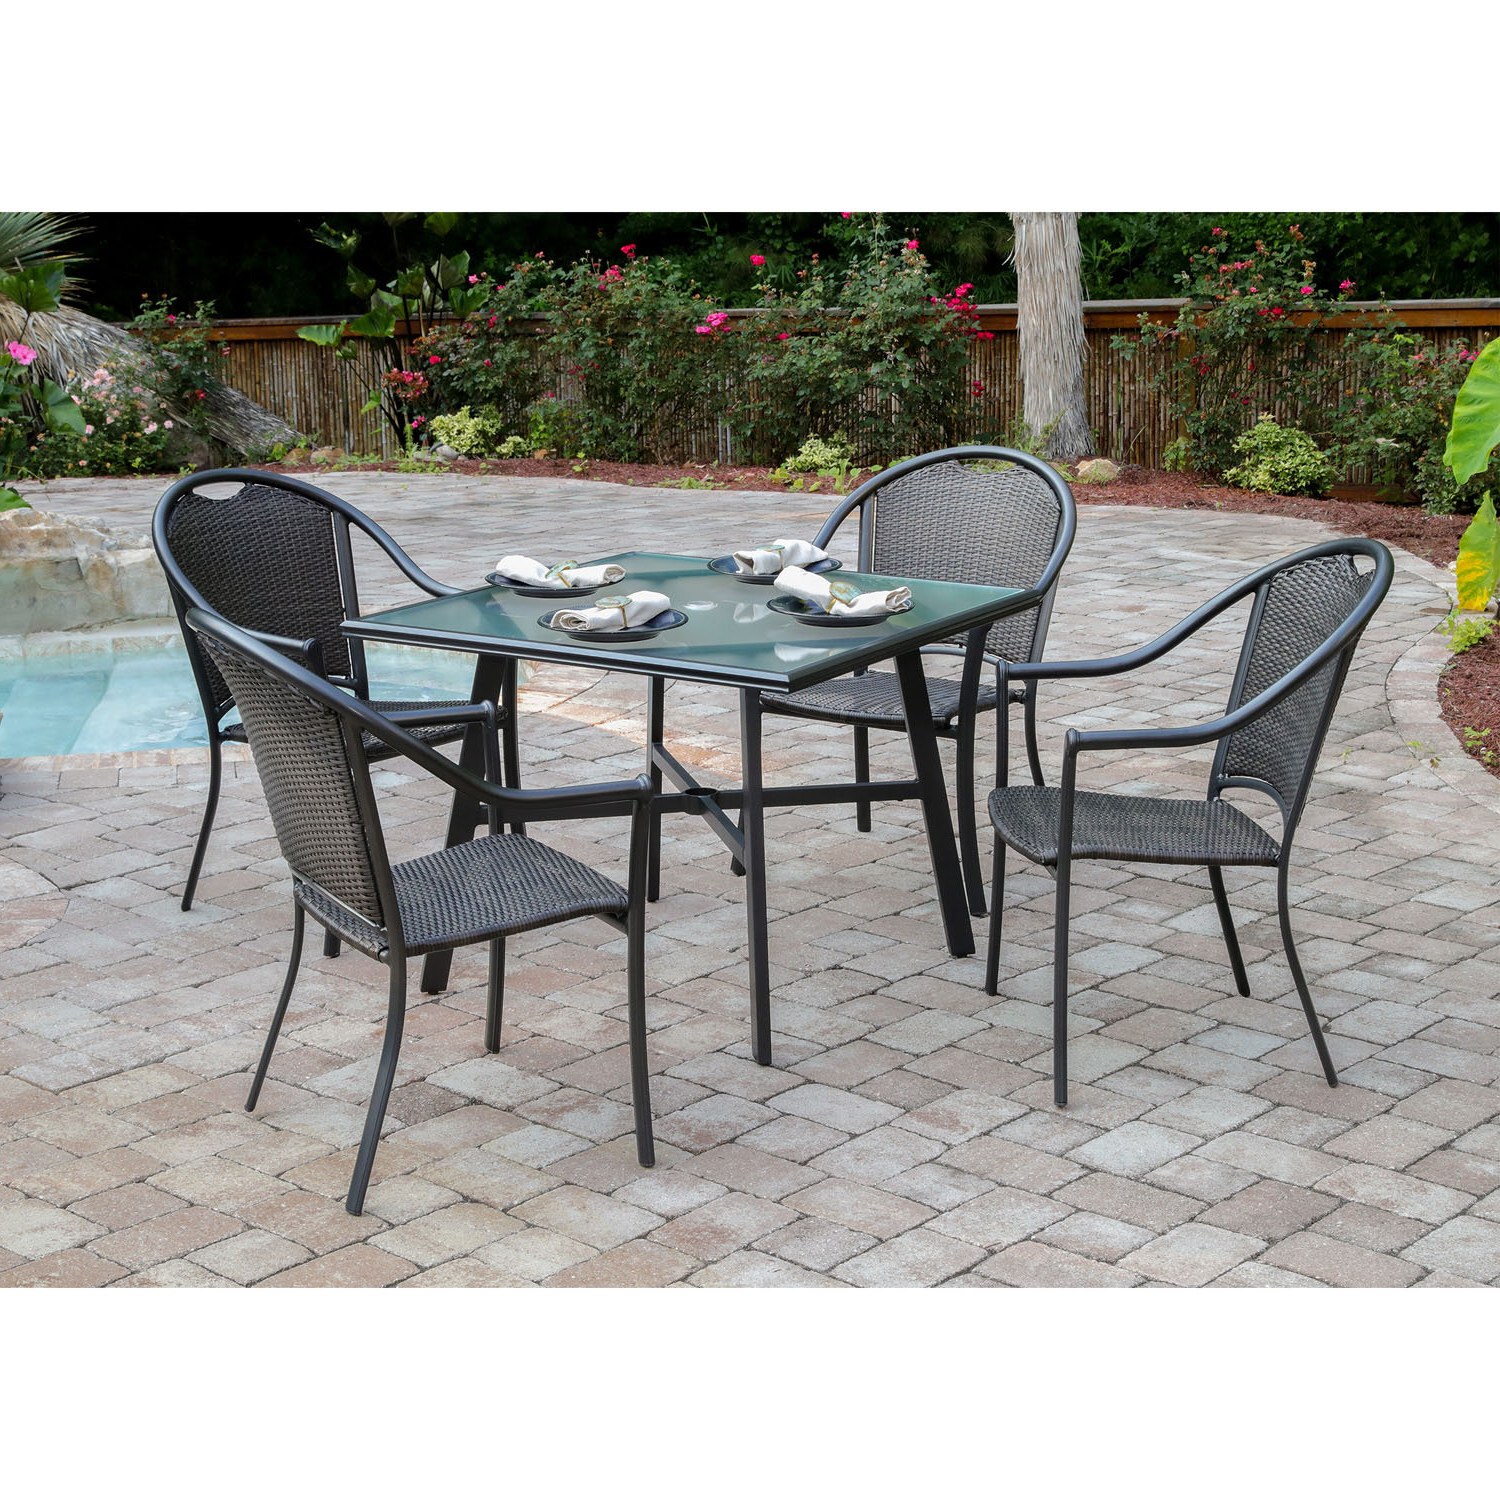 Bearden 3 Piece Dining Sets With Regard To Recent Charlton Home Bearden 5 Piece Commercial Grade Patio Set With (View 17 of 25)